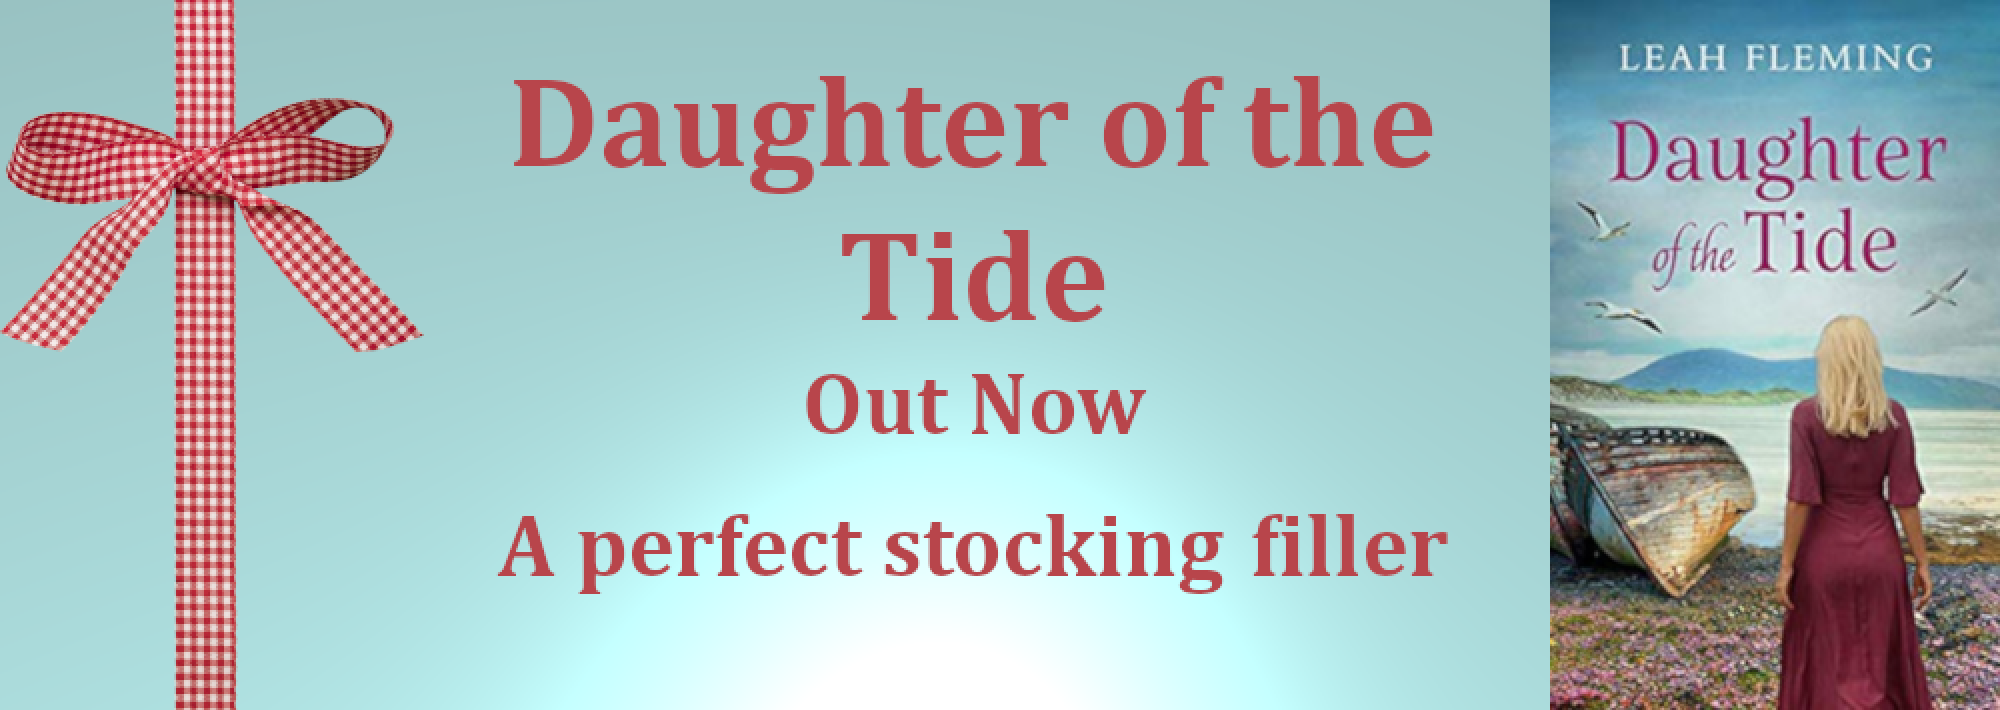 http://www.leahfleming.co.uk/books/daughter-of-the-tide/